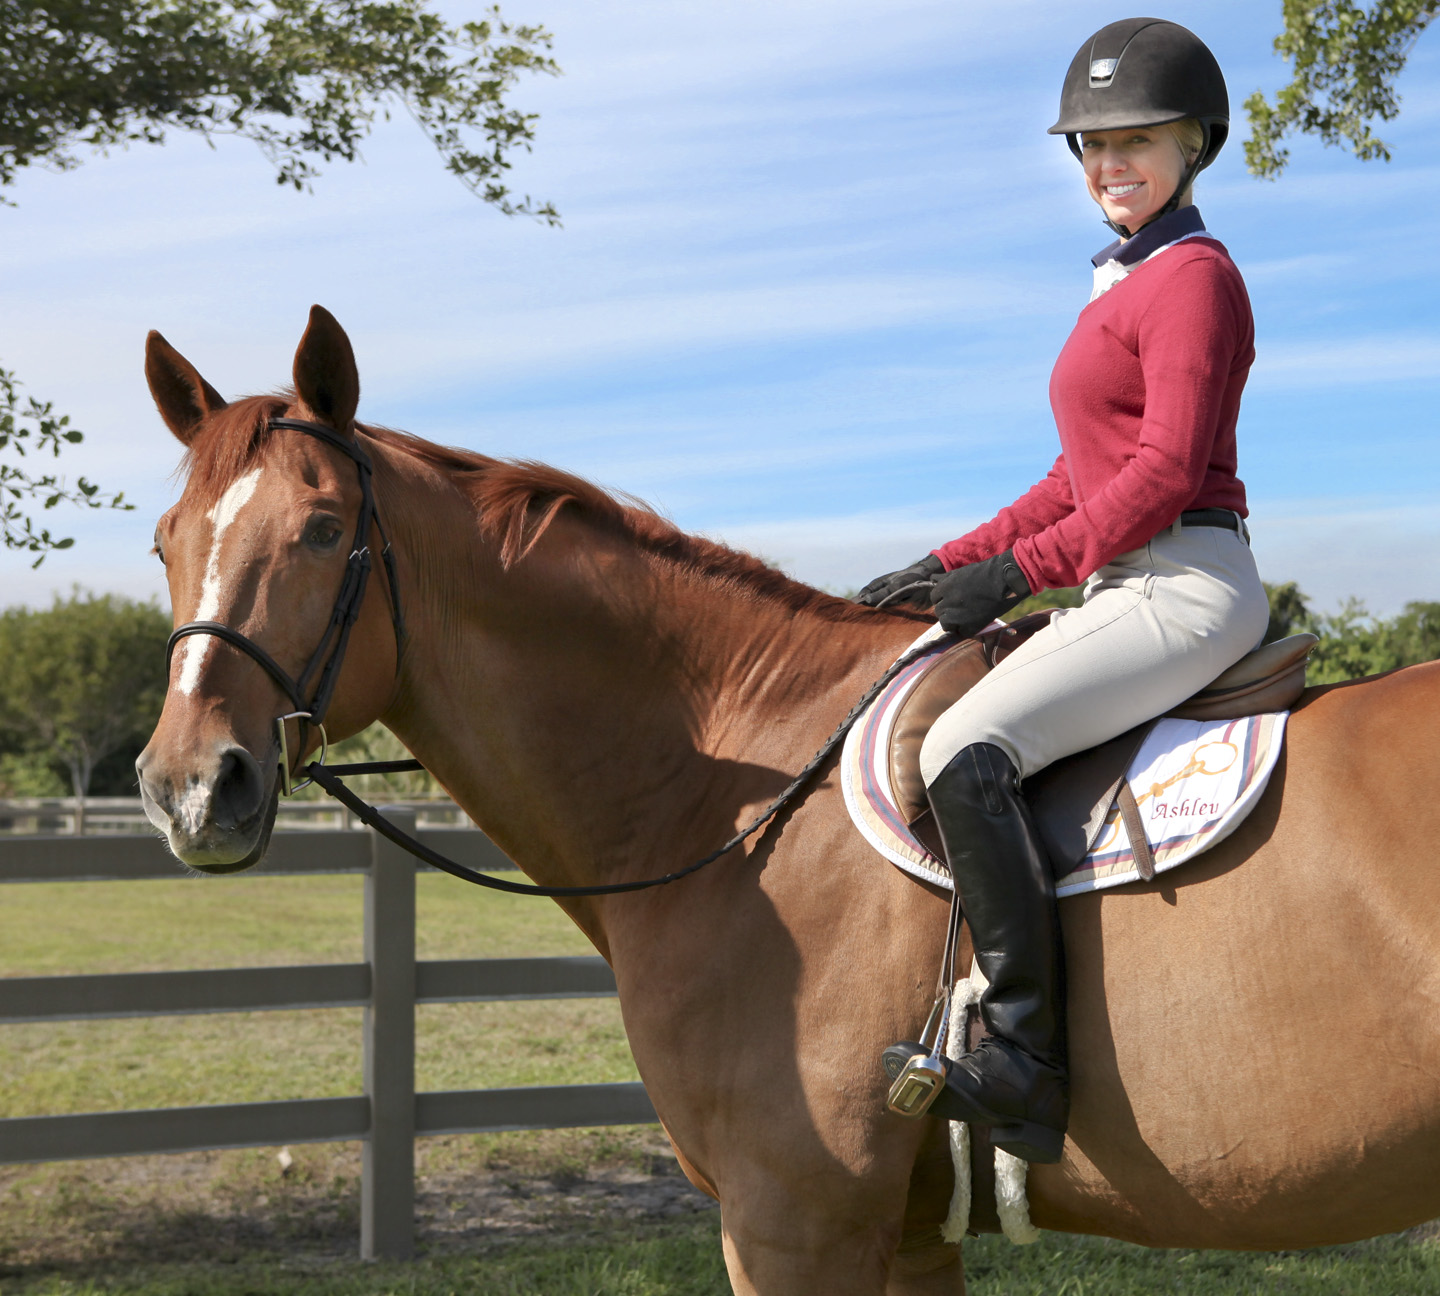 Riding Boots With Comfort Amp Style Ariat Challenge Field